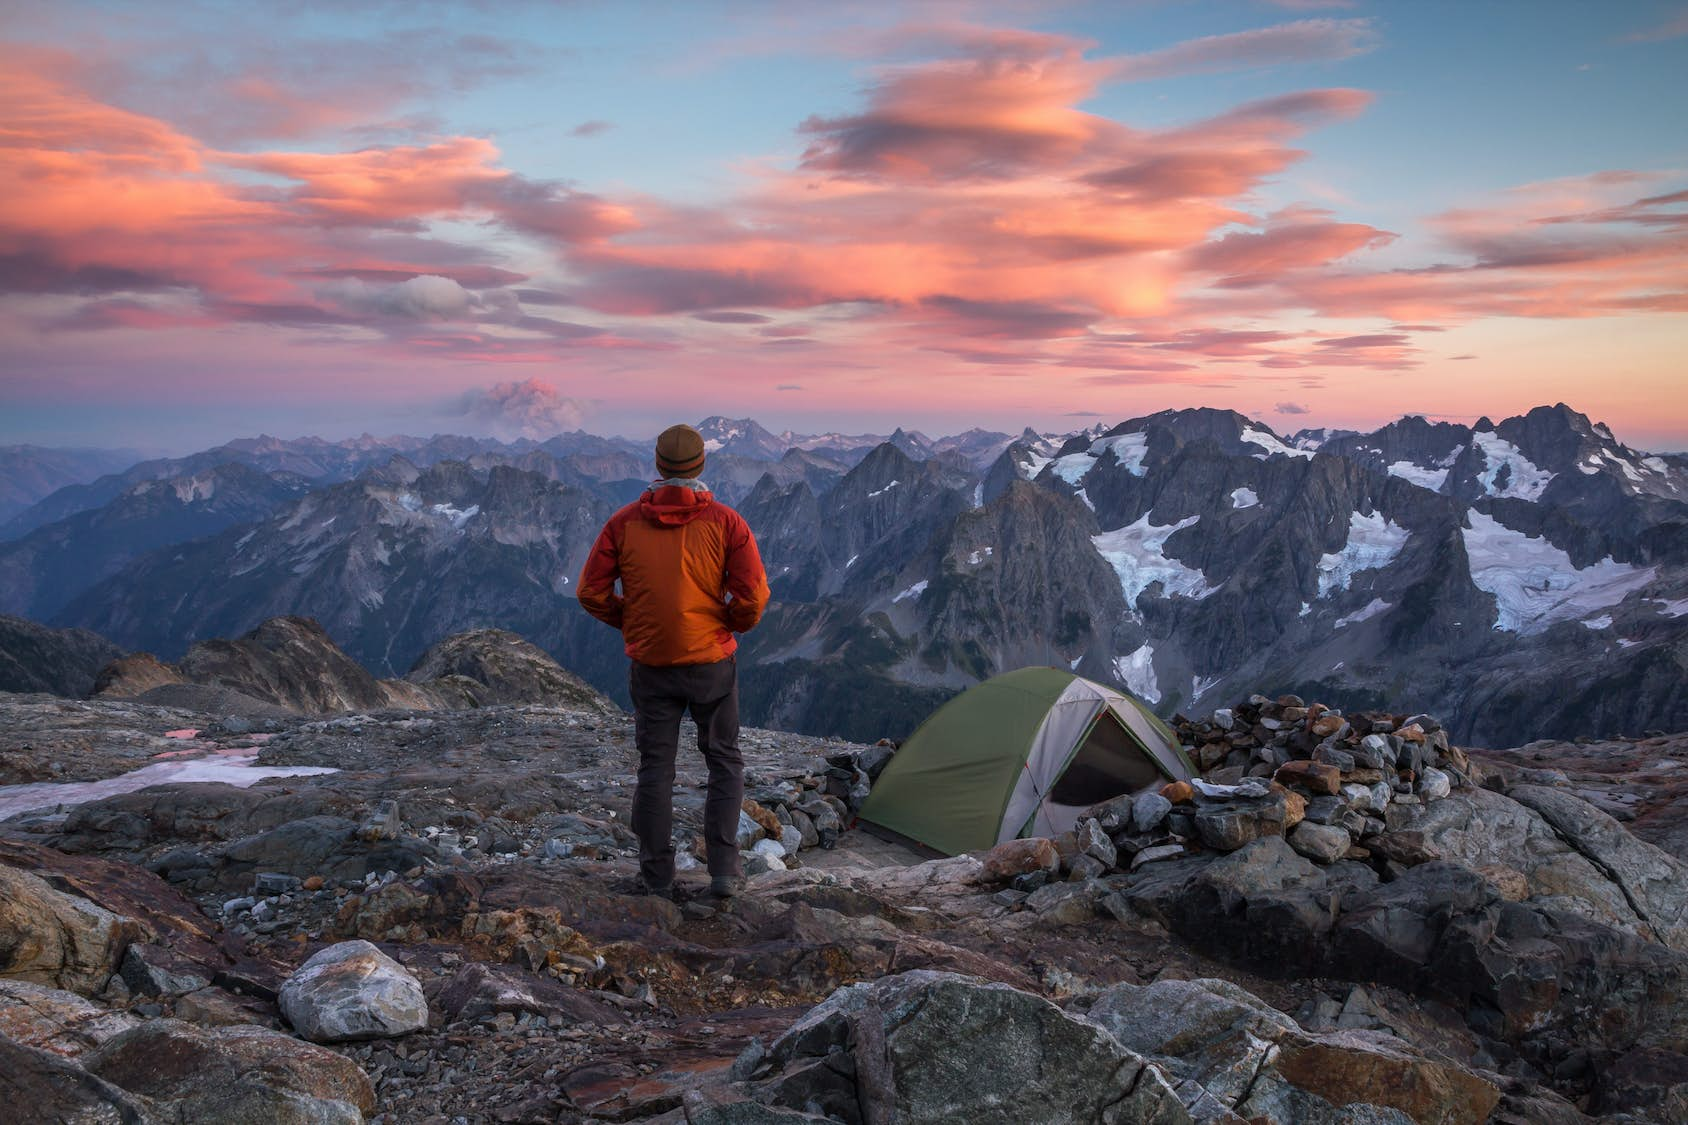 Discover 11 US national parks that are total hidden gems